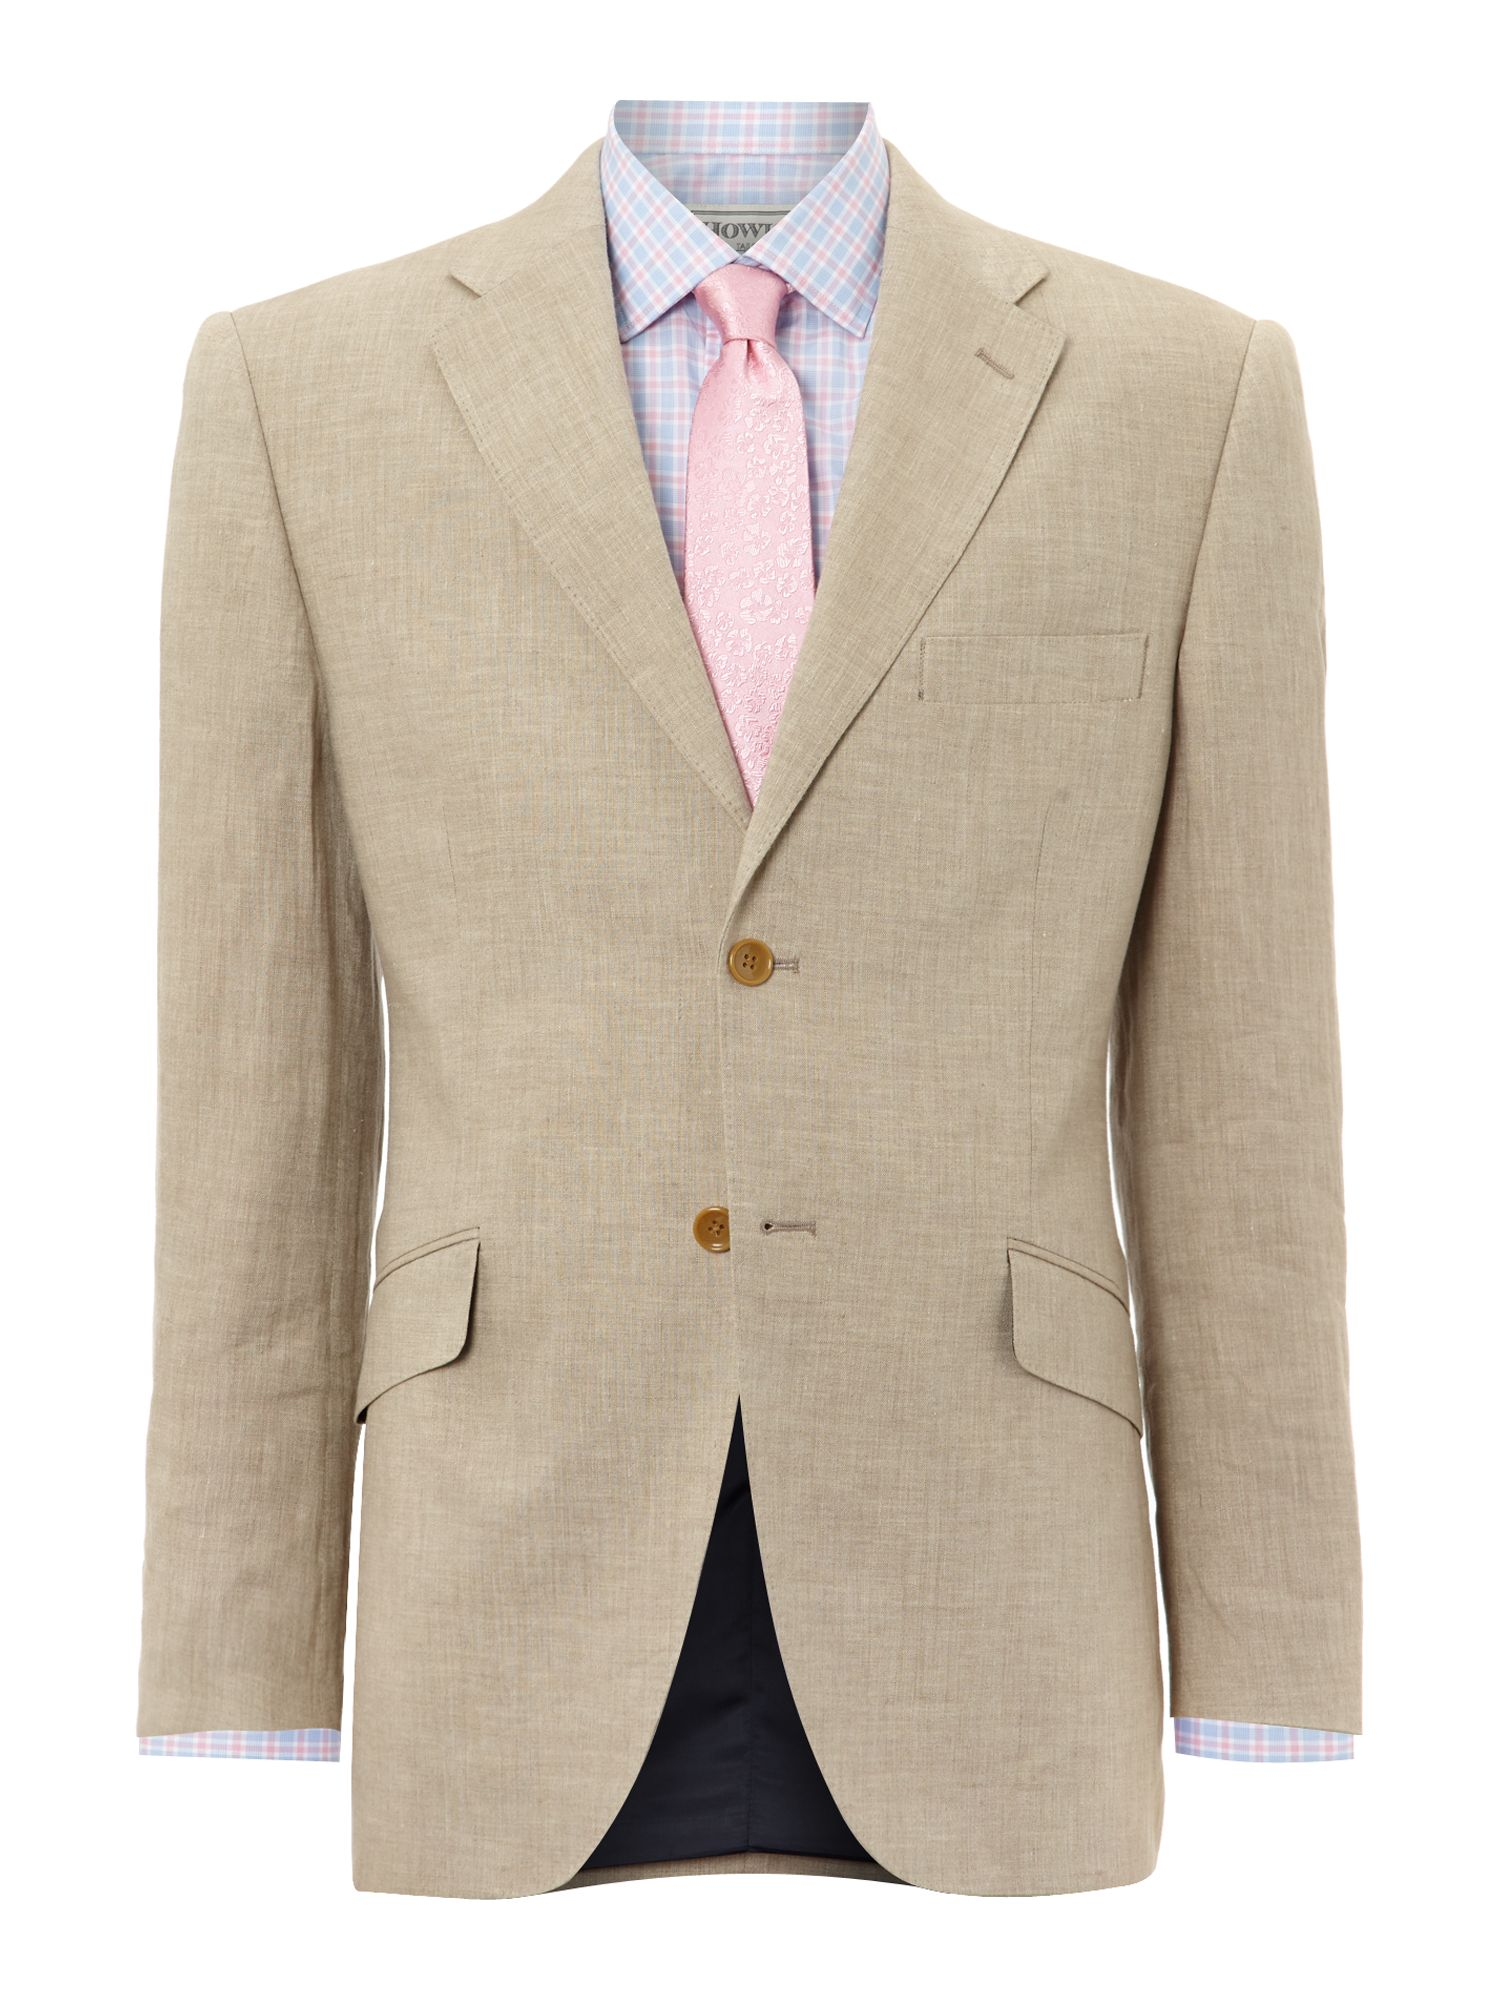 Mens Howick Tailored Tyler linen suit jacket $99.00 AT vintagedancer.com